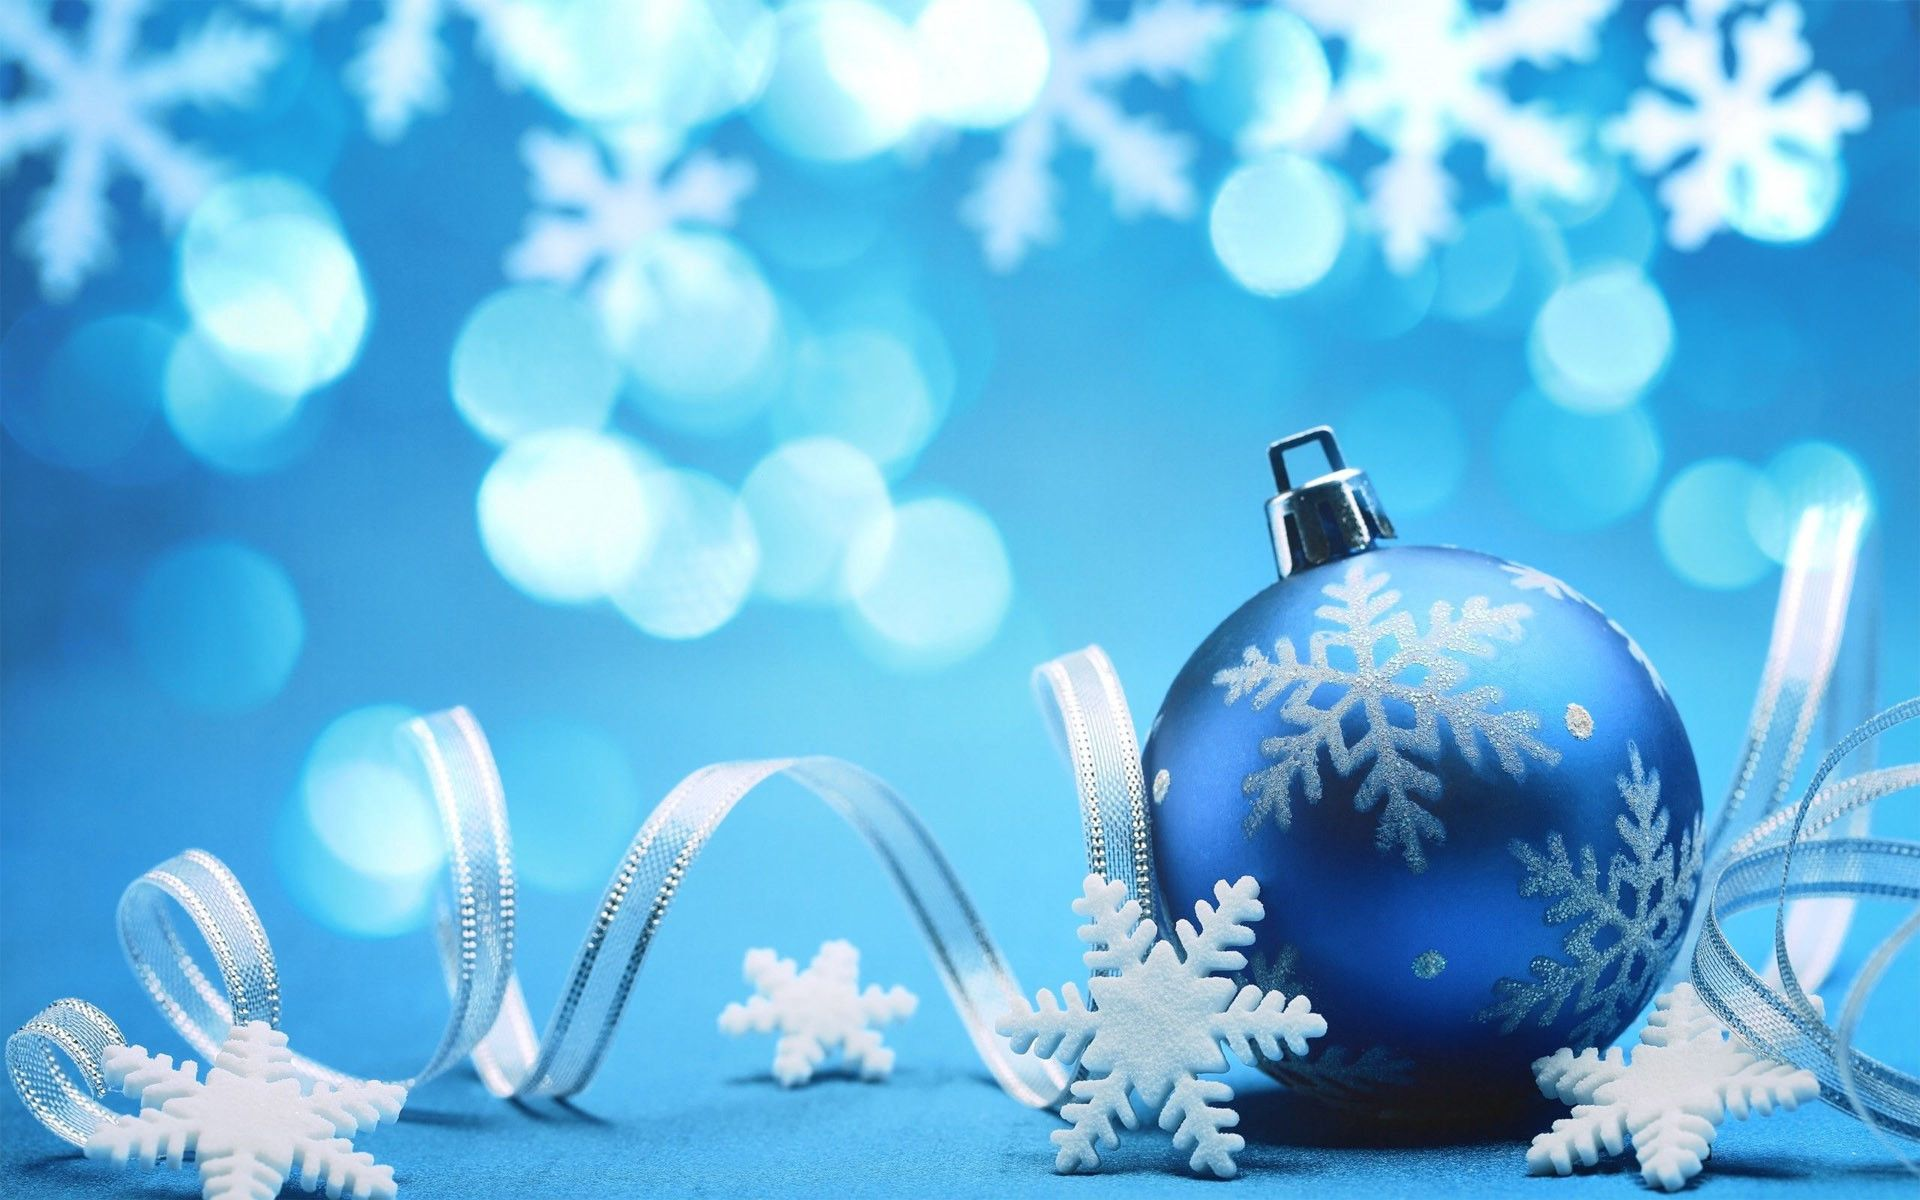 Blue Christmas Wallpapers - Top Free